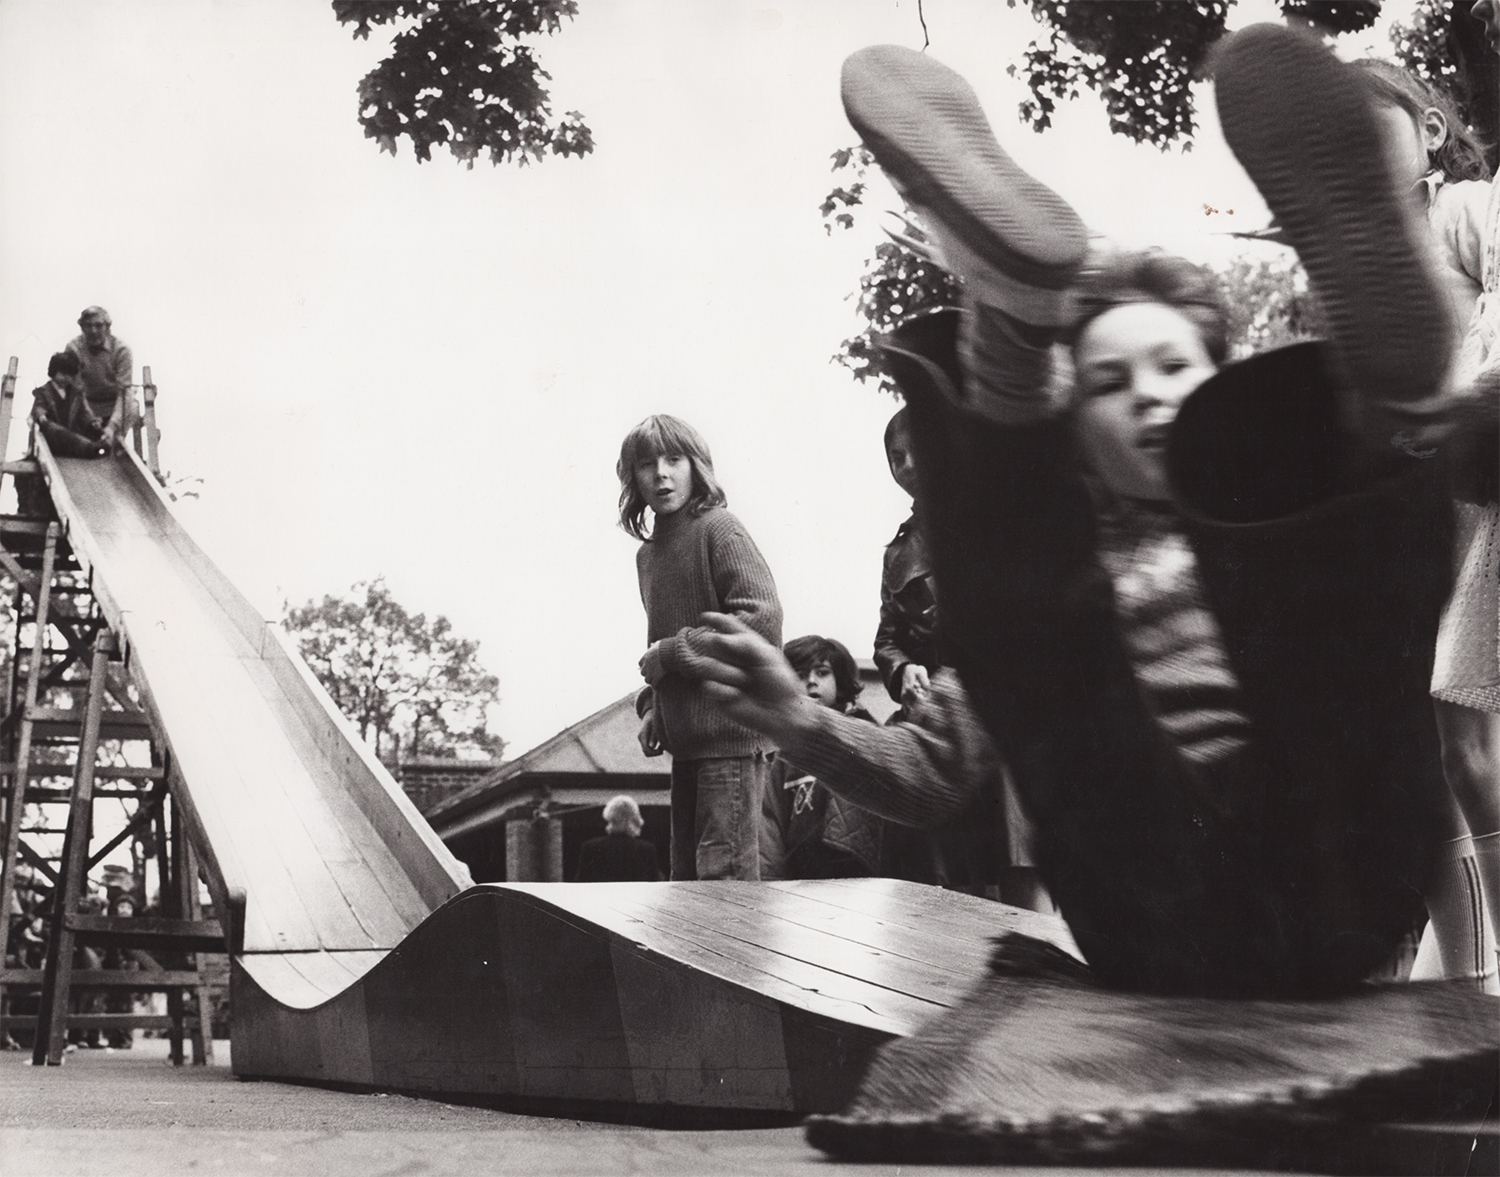 Jo Spence, Adventure Playgrounds: Photographing housing communities and children's playgrounds (1973-1975). Copyright the Estate of Jo Spence. Courtesy Richard Saltoun Gallery